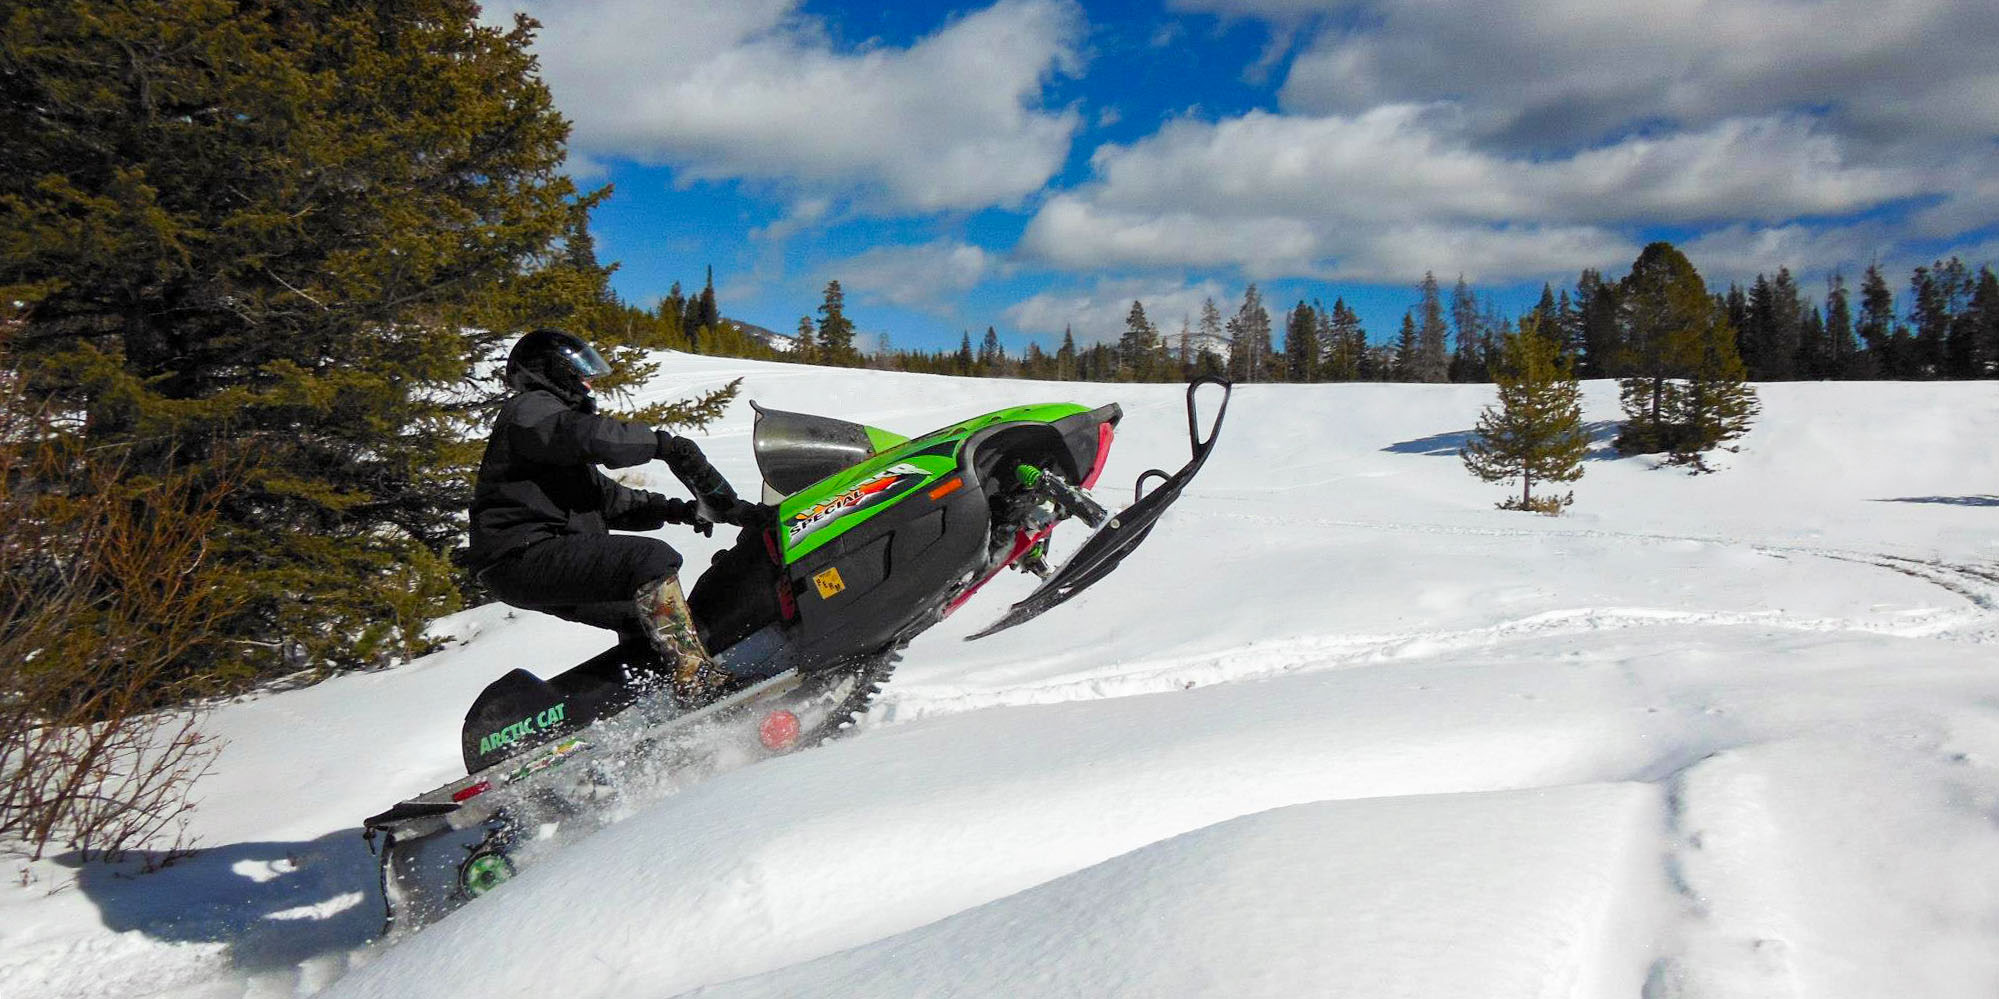 Find all snowmobile access points in the Little Belt Mountains.